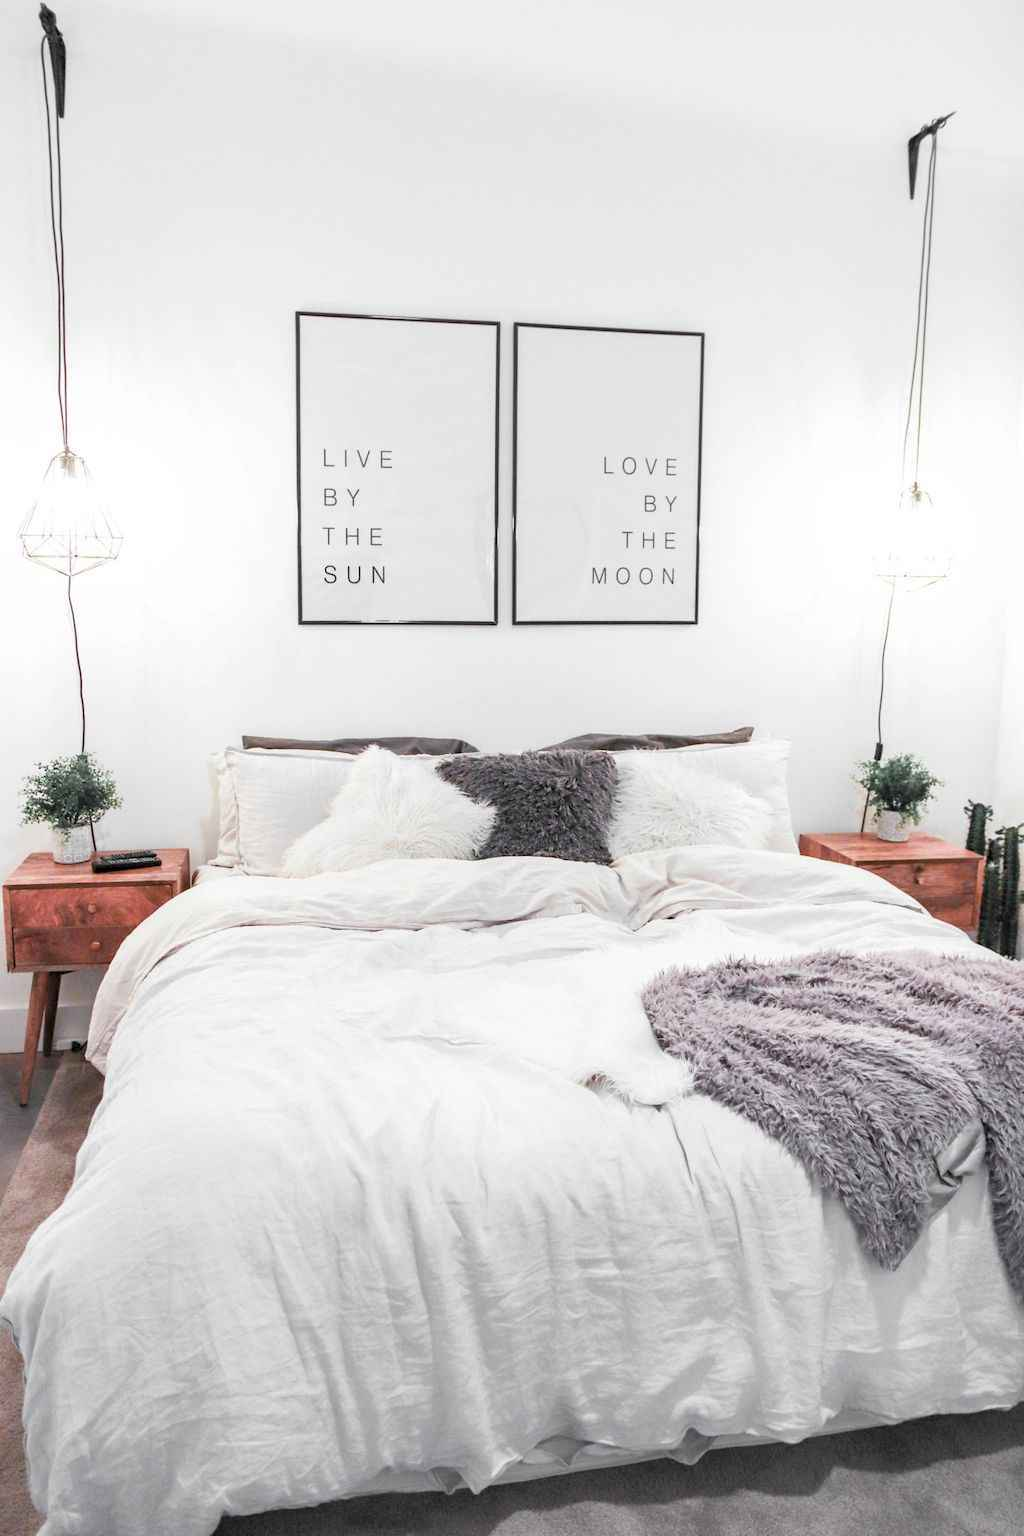 Simply bedroom decoration ideas (4)